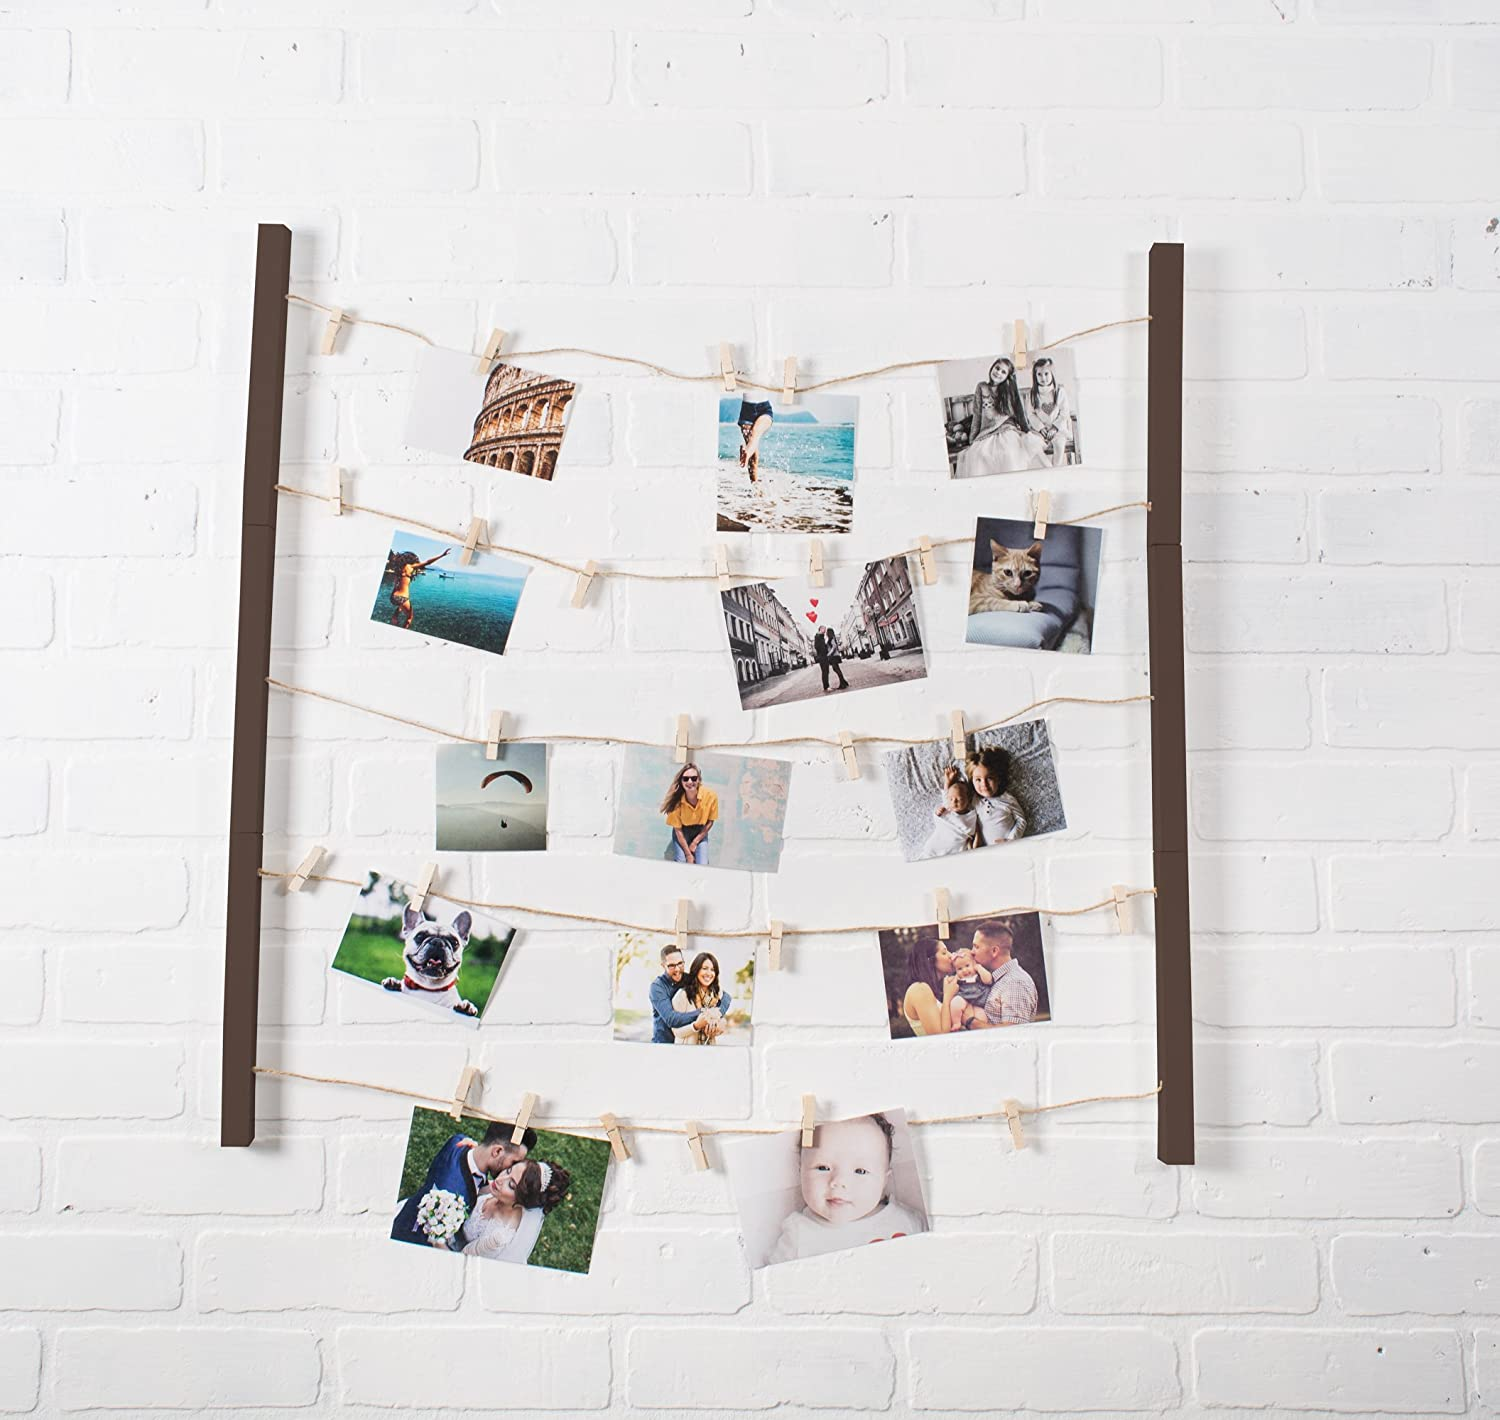 Natural Wood Wall Mounts and Art and 30 Wooden Clothespin Clips for Hanging Photos Rustic Gray Prints DII Home Traditions Floating Photo Display DIY Photo Collage Set with Twine Clothesline